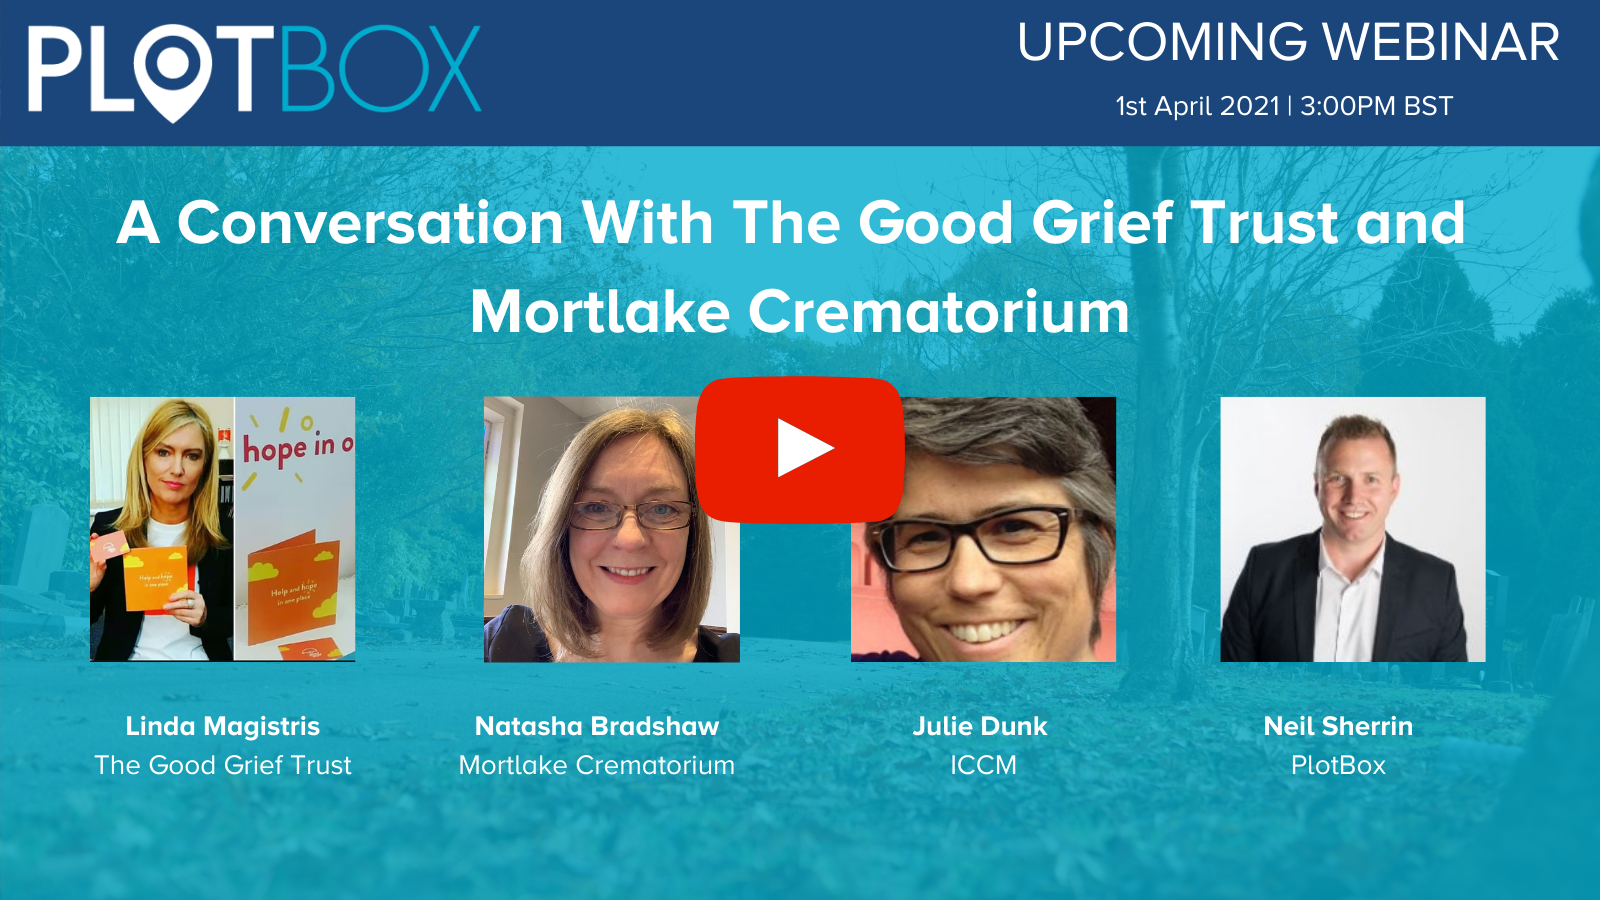 1st April 2021: A Conversation With The Good Grief Trust and Mortlake Crematorium